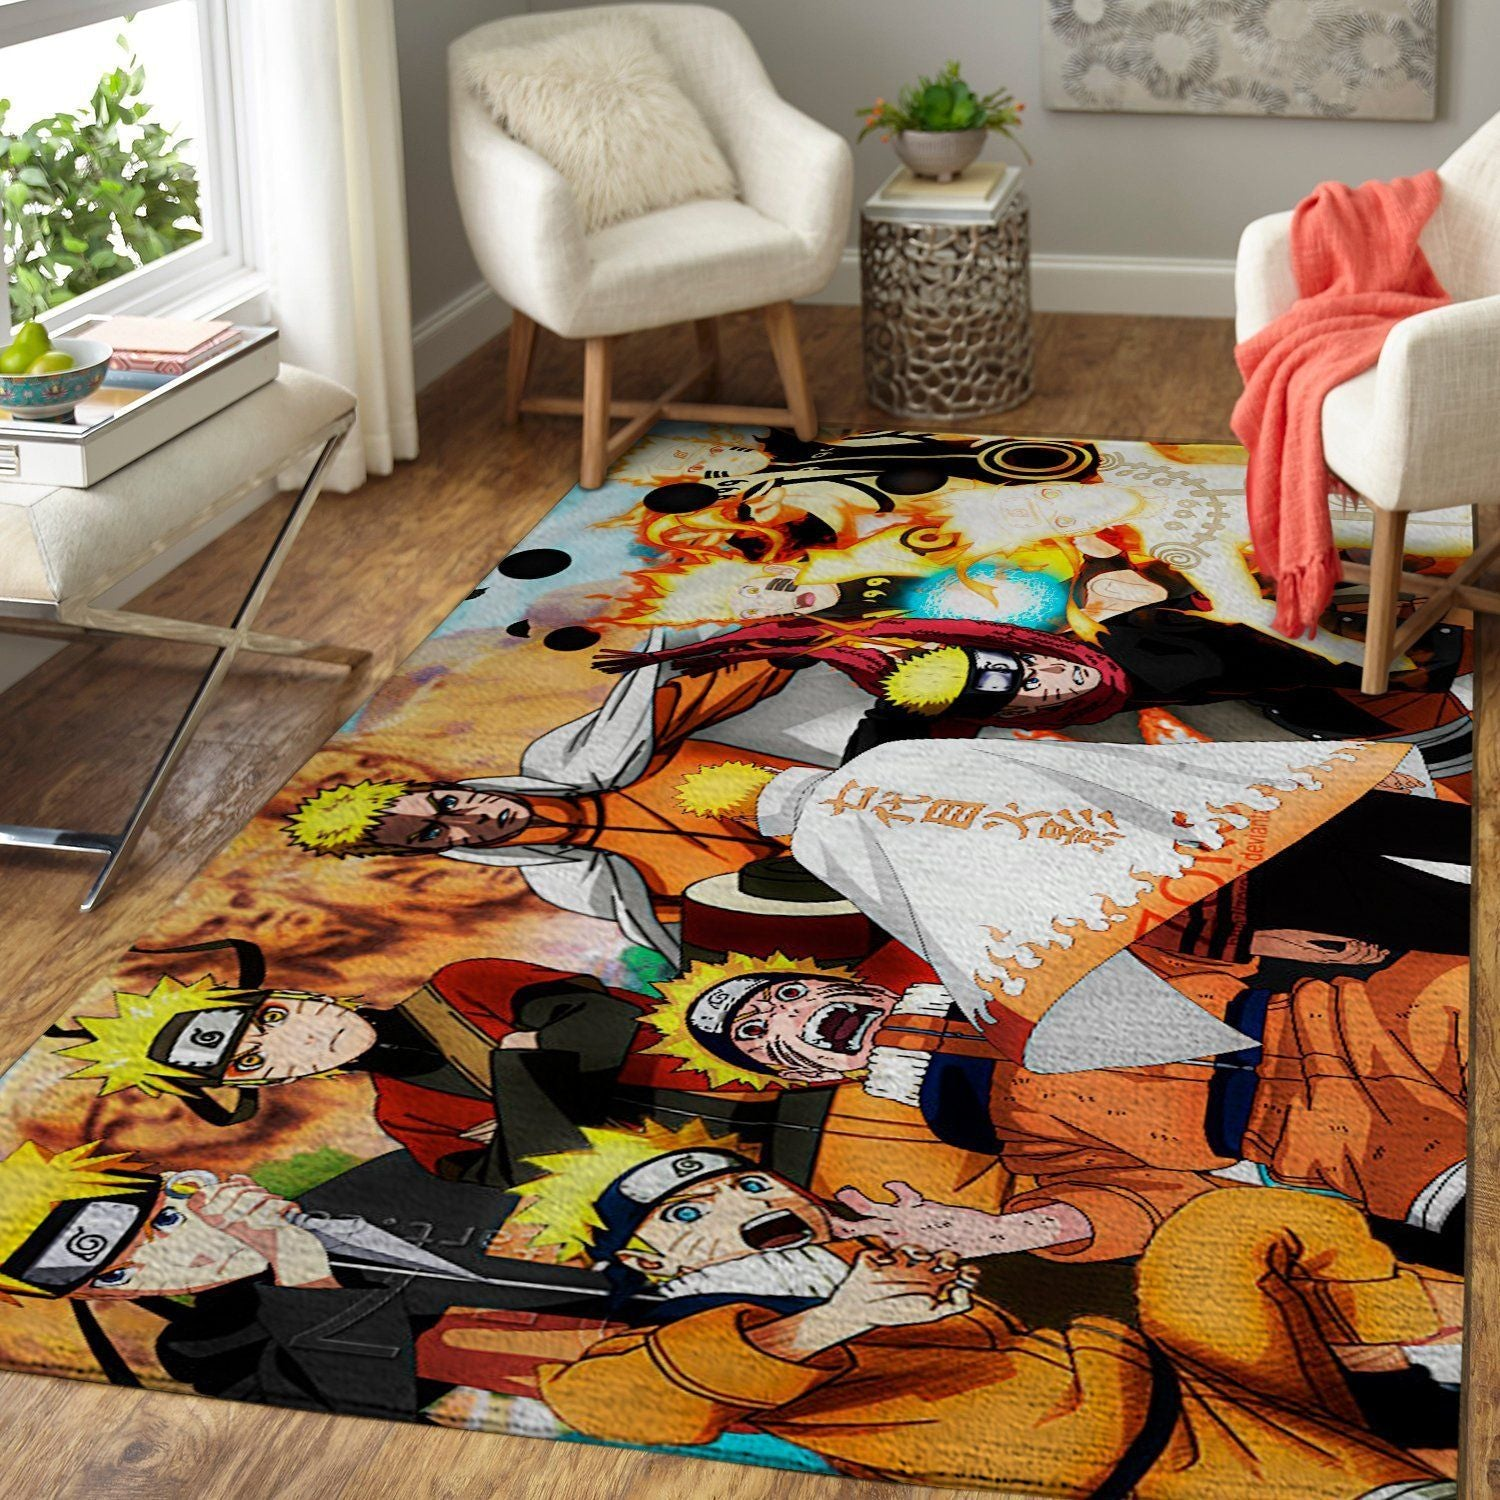 Naruto All Forms Area Rug / Floor Decor 191013